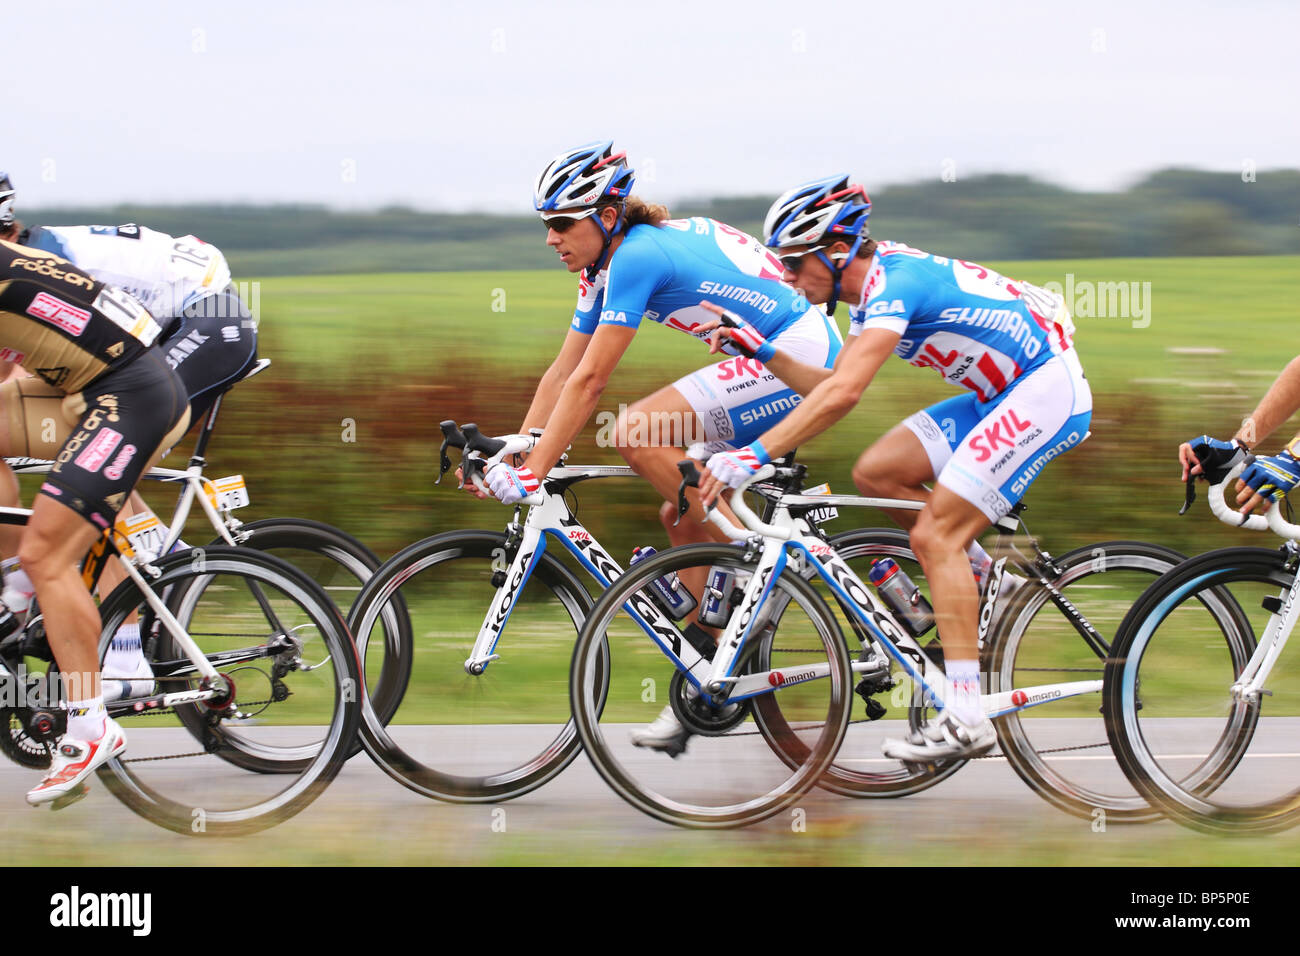 Two Riders from Team Skil-Shimano in discussion - Stock Image